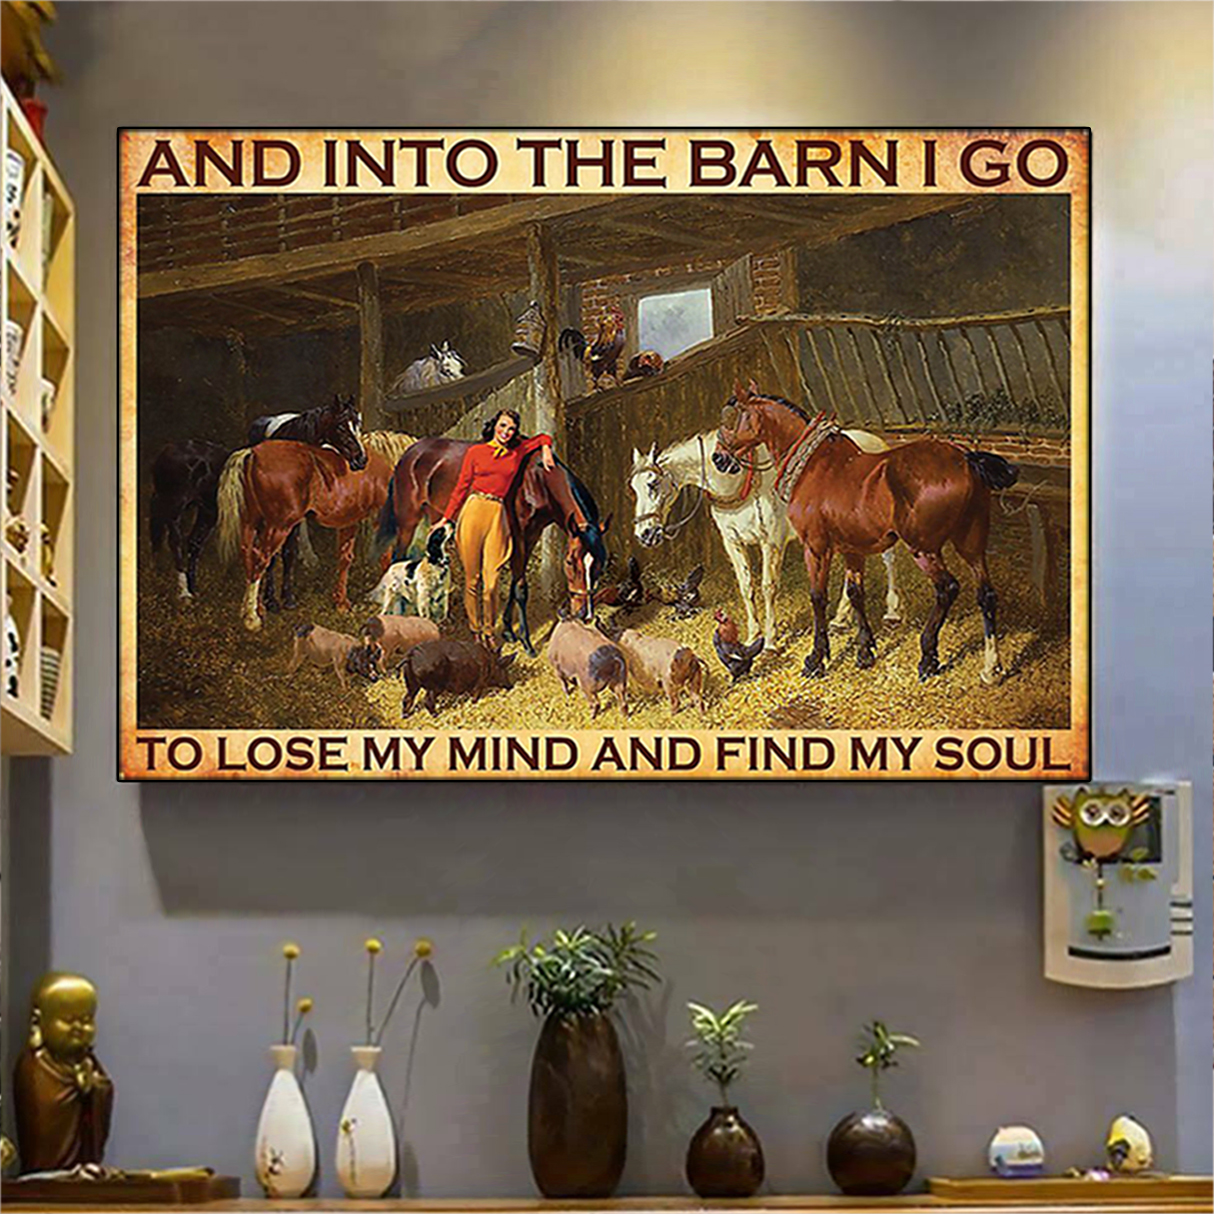 Farm And into the barn I go to lose my mind and find my soul poster A2